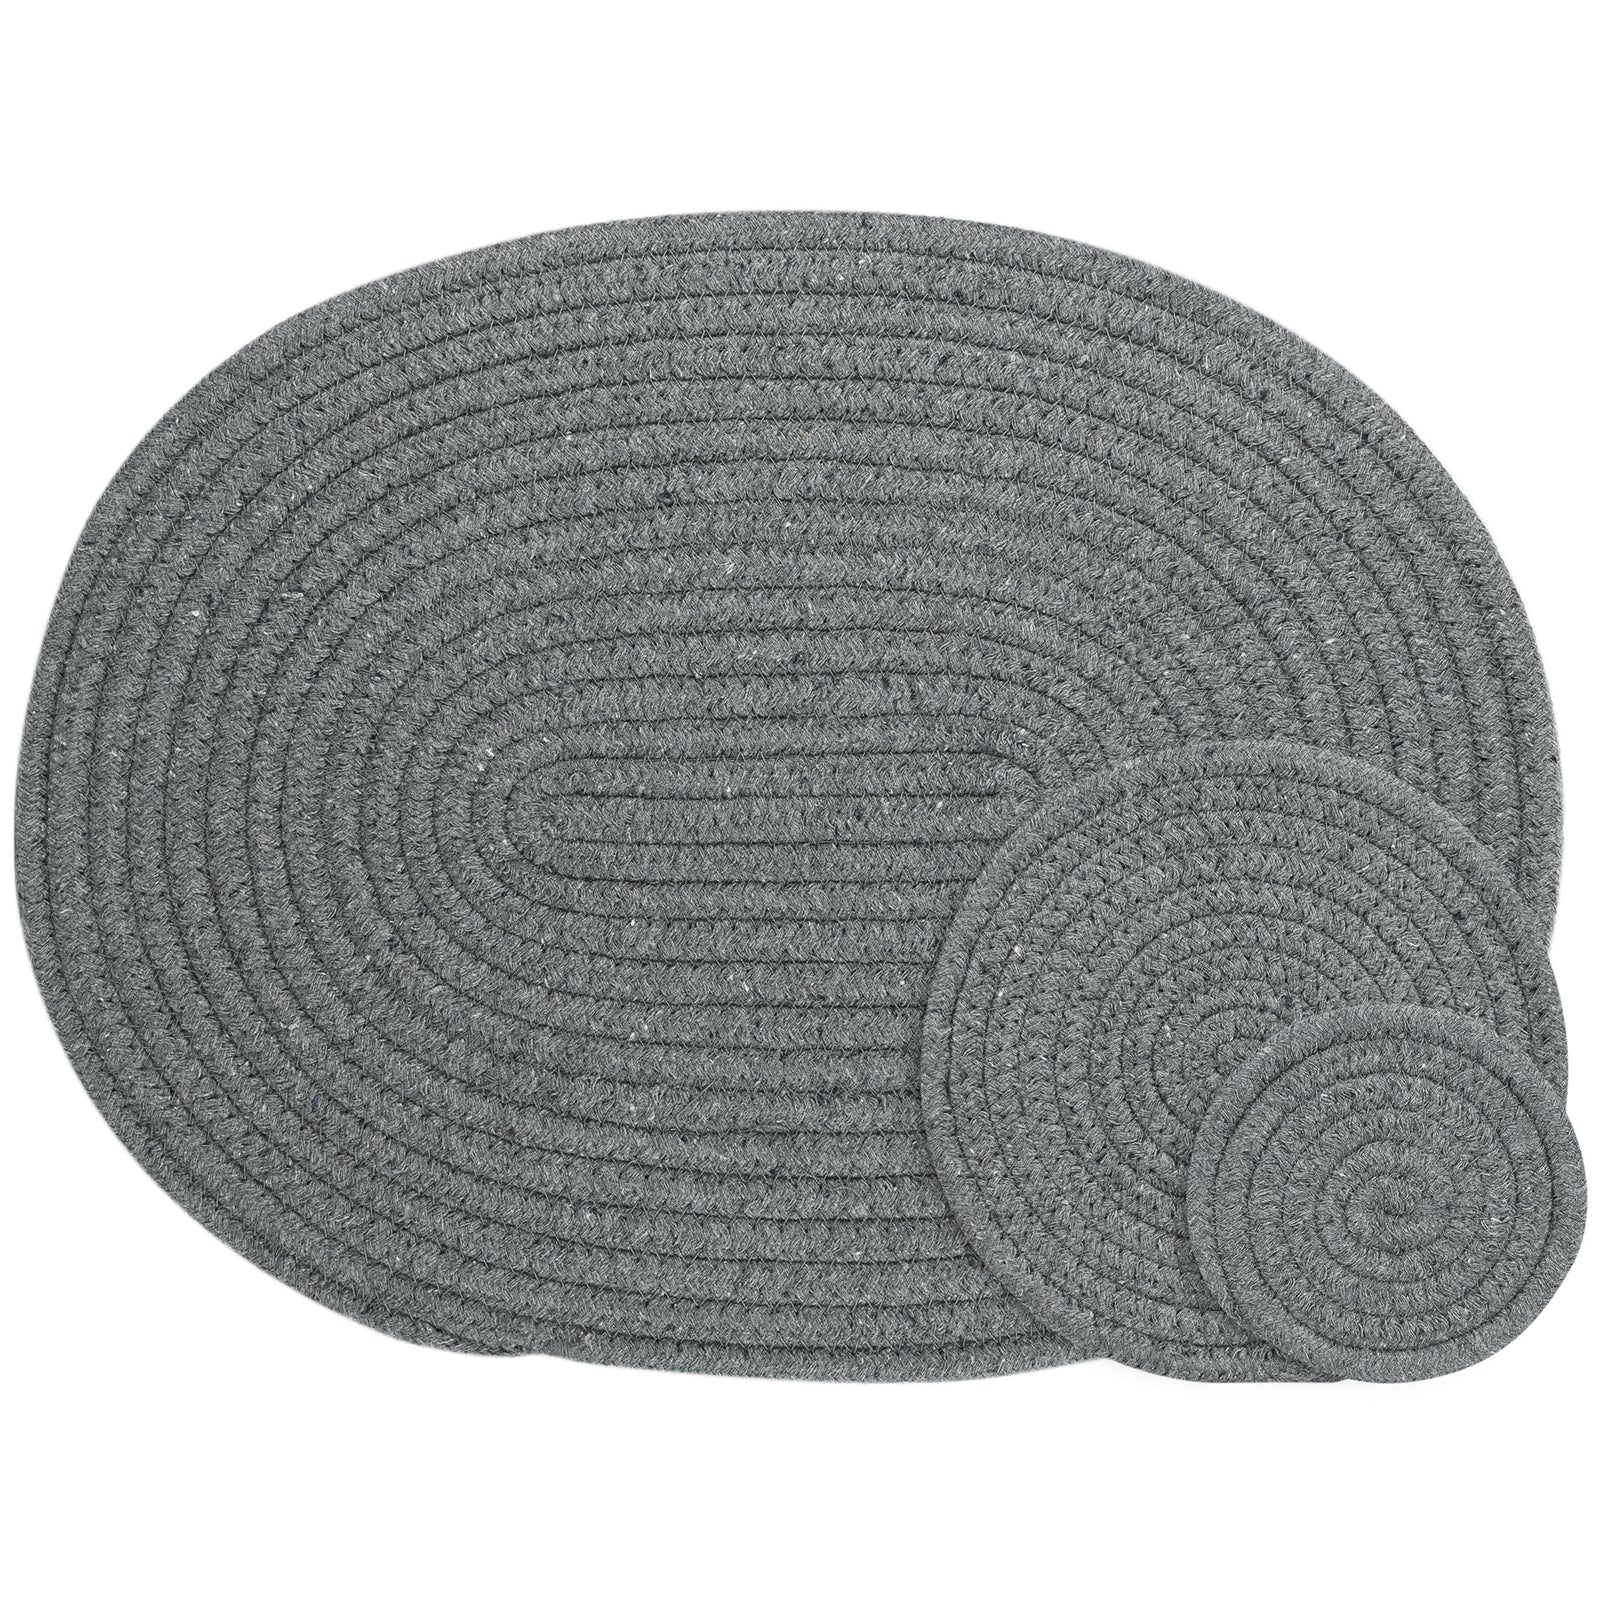 Dark Gray Woven Cotton Placemat and Coaster Set